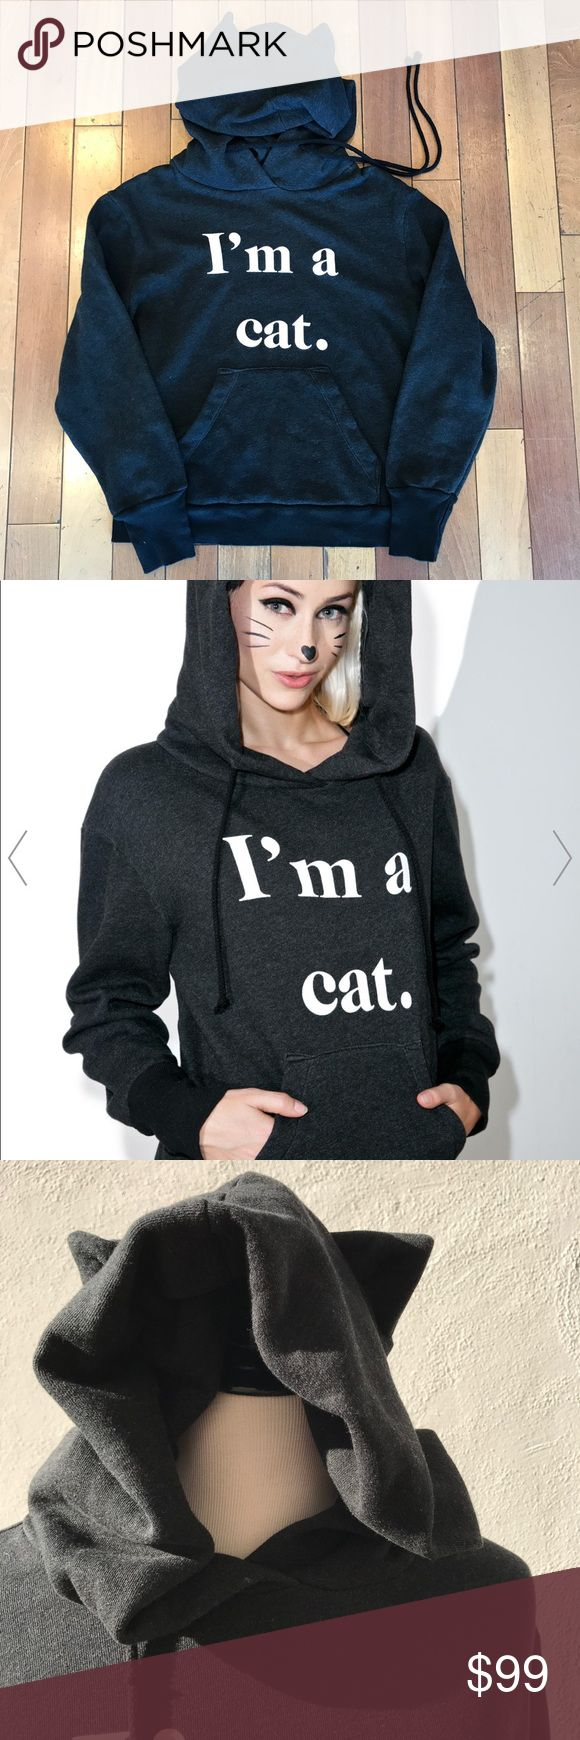 """Final♦️WILDFOX I'm a Cat hoodie with ears ♦️Firm. Amazing and I wanted to keep it but am over budget. The price is firm and it's in excellent condition tagged as a sample. LAST CALL at this temporary markdown! Ship it today before my vacation starts late Tuesday.  Check back daily for DAILY DEALS.  *** This Rare and rad WILDFOX hoodie is incredibly soft and dang cute.  I'M A CAT - This hoodie has ears! Something about this...  Laid flat, measures 21"""" armpit to armpit x 23.5""""  See my other…"""